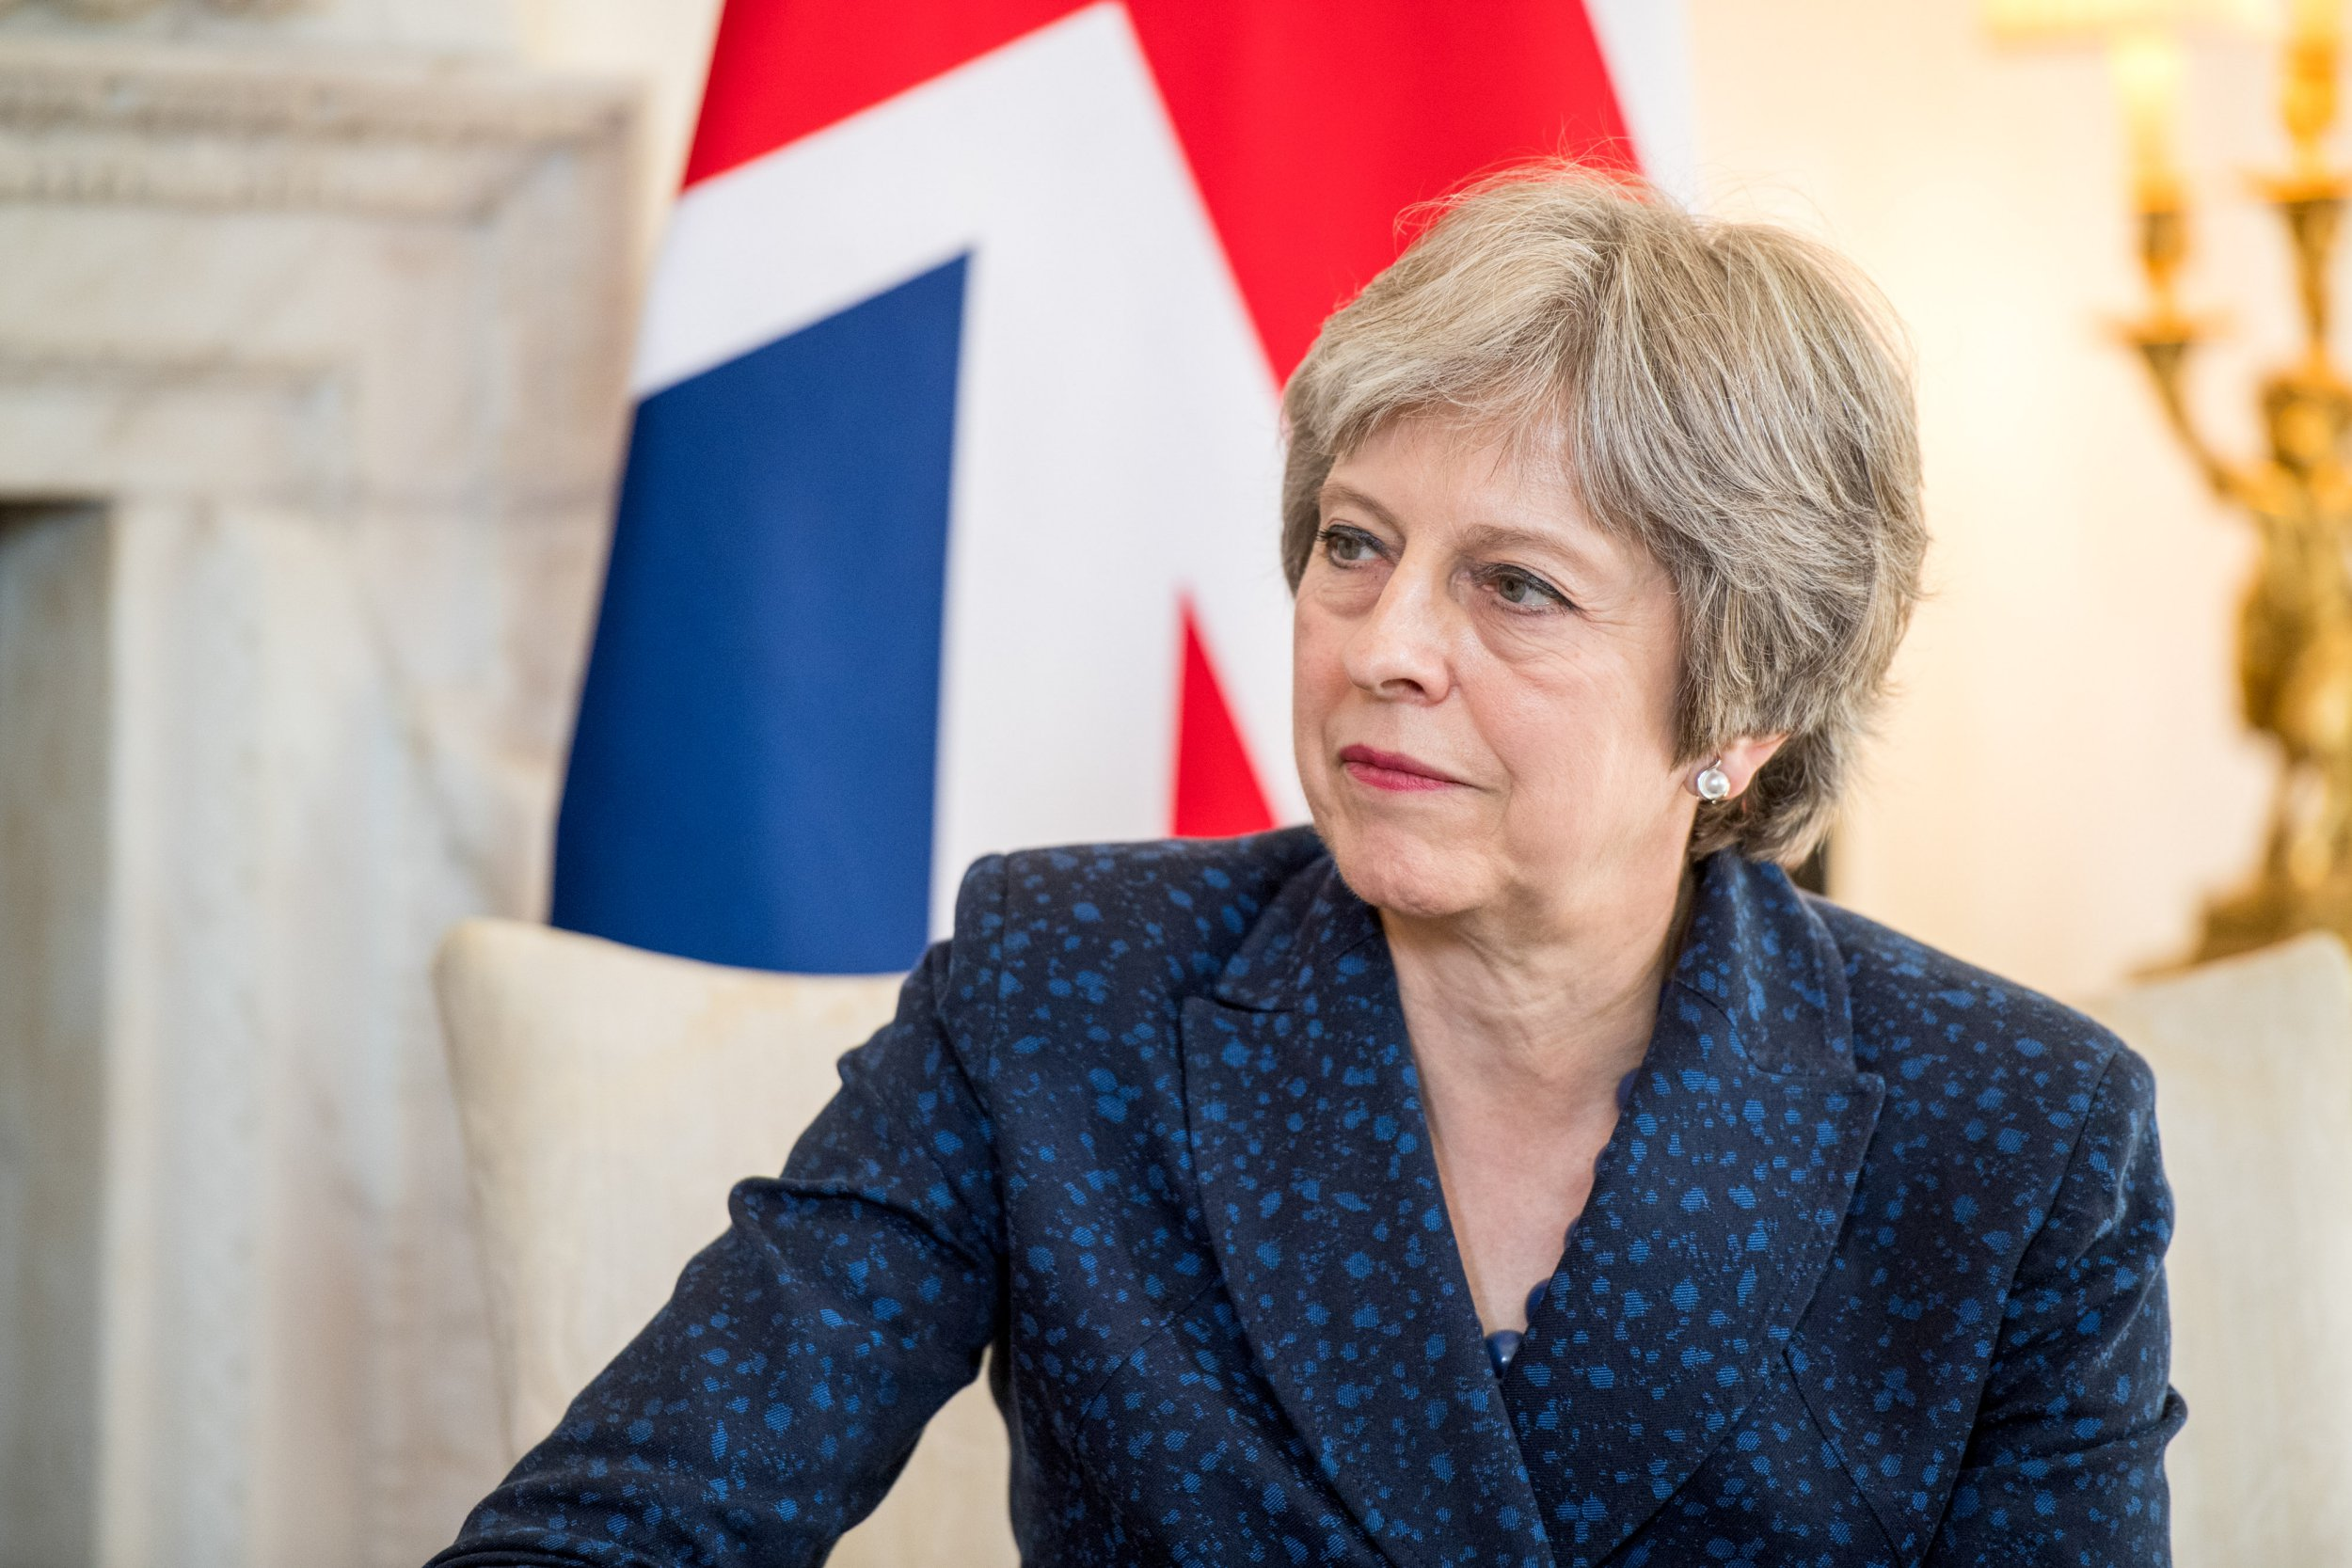 I was called anti-business for my ideas but now even Theresa May agrees with me